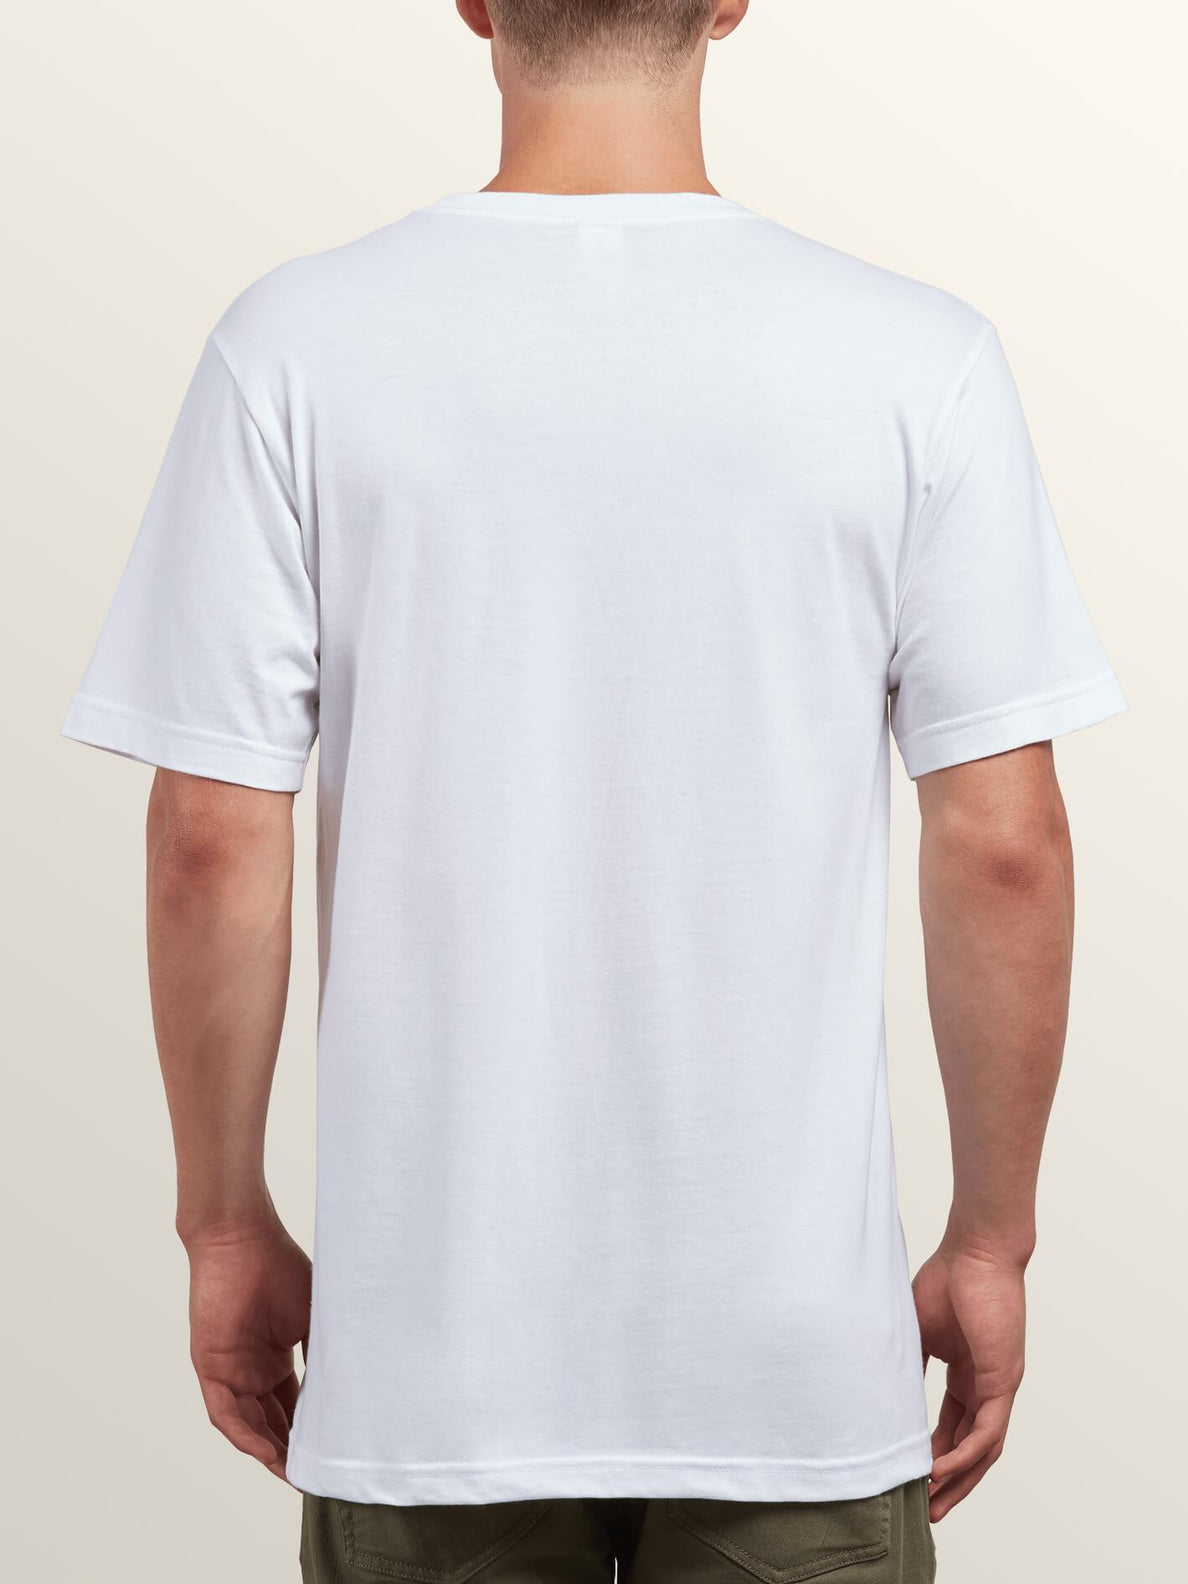 Mystico Short Sleeve Tee In White, Back View